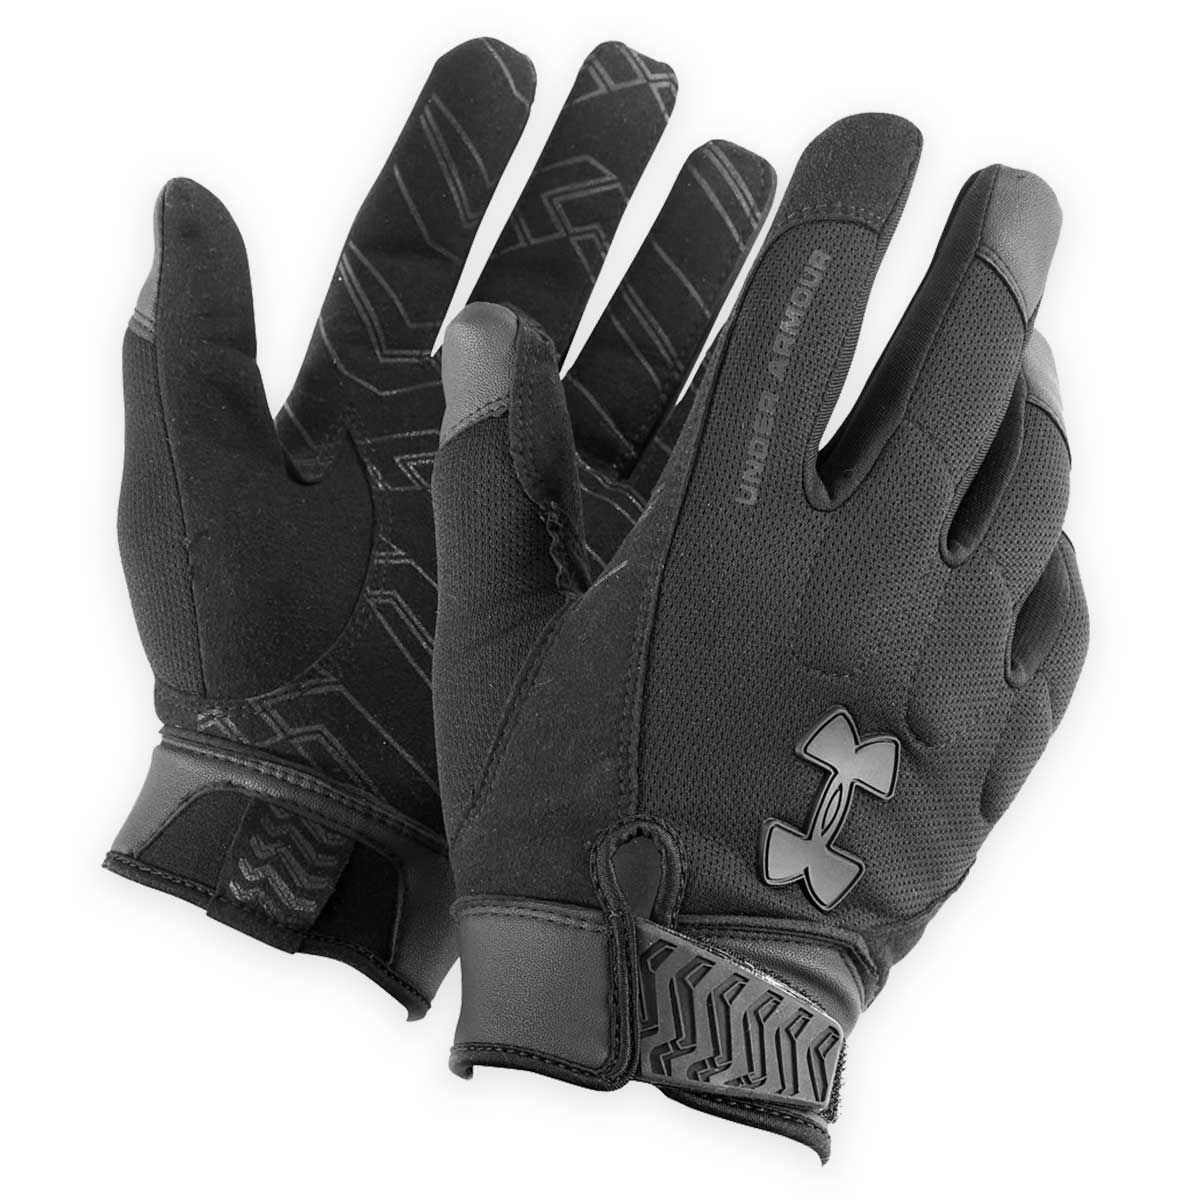 652190011 Tactical gloves, Tactical clothing, Police gear